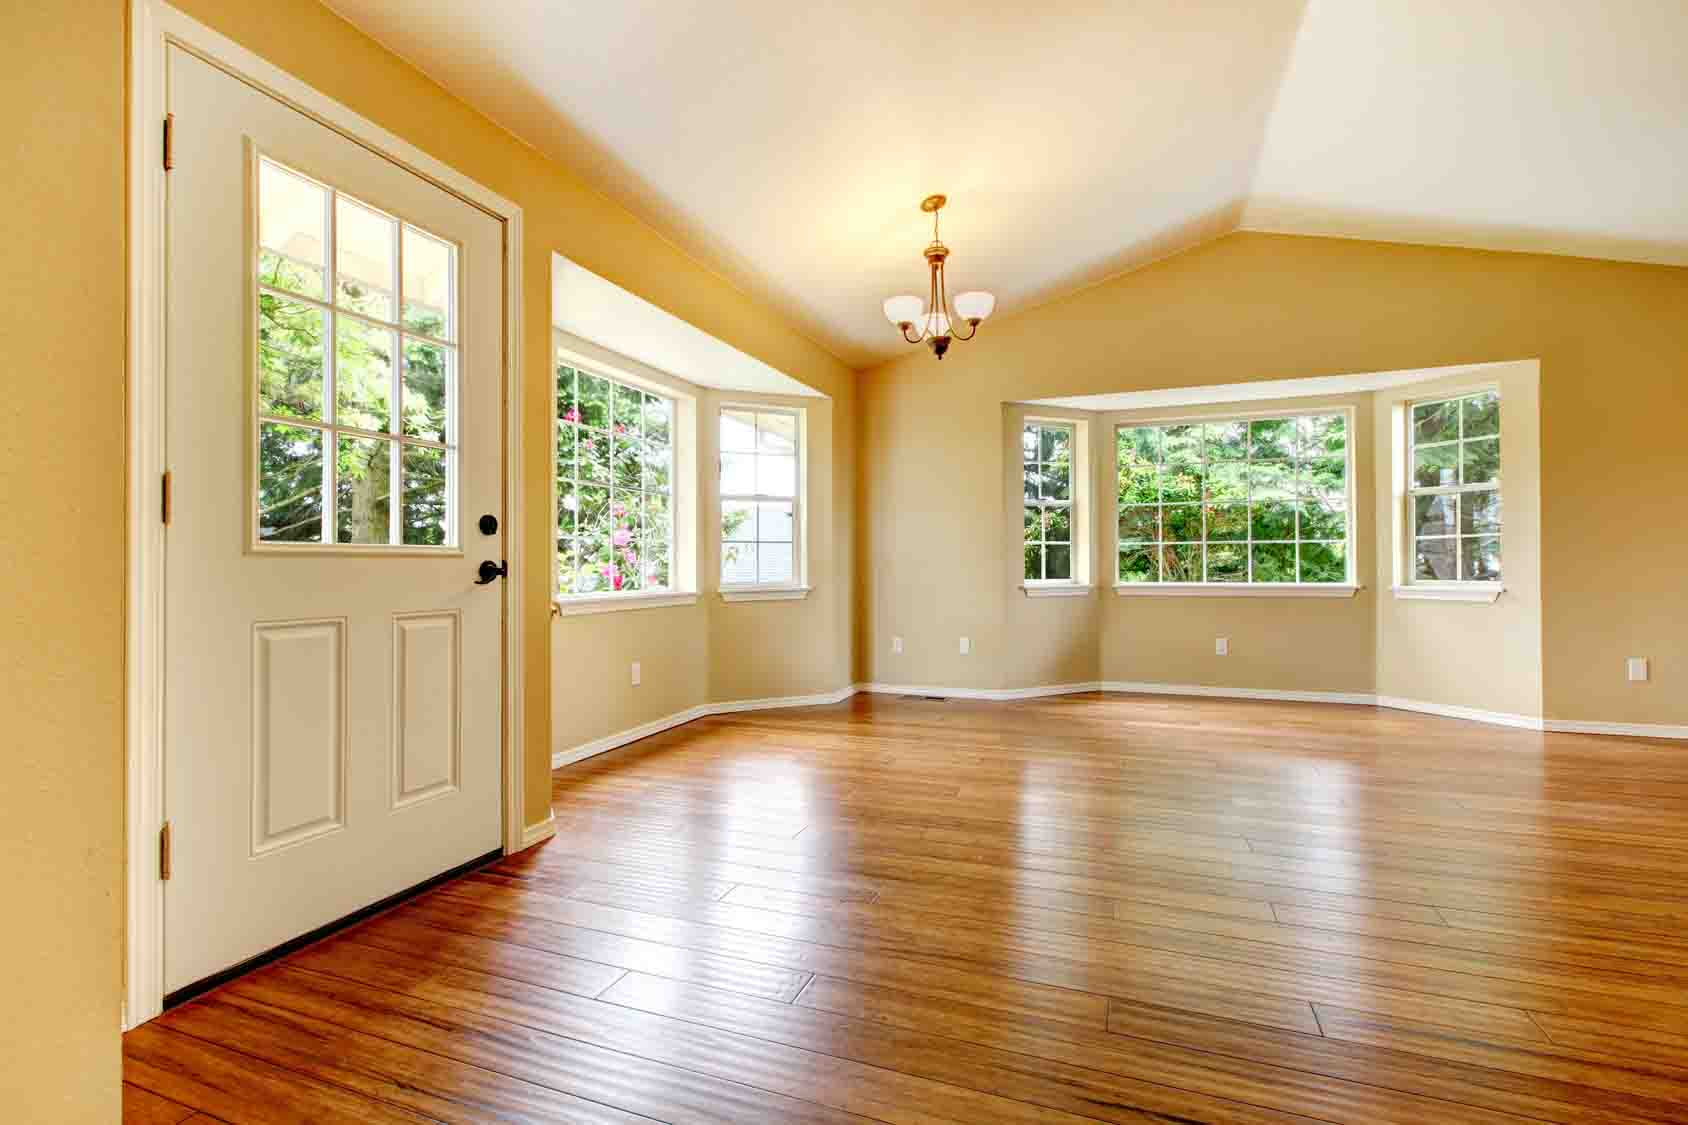 Big empty living room - Large Empty Newly Remodeled Living Room With Wood Floor